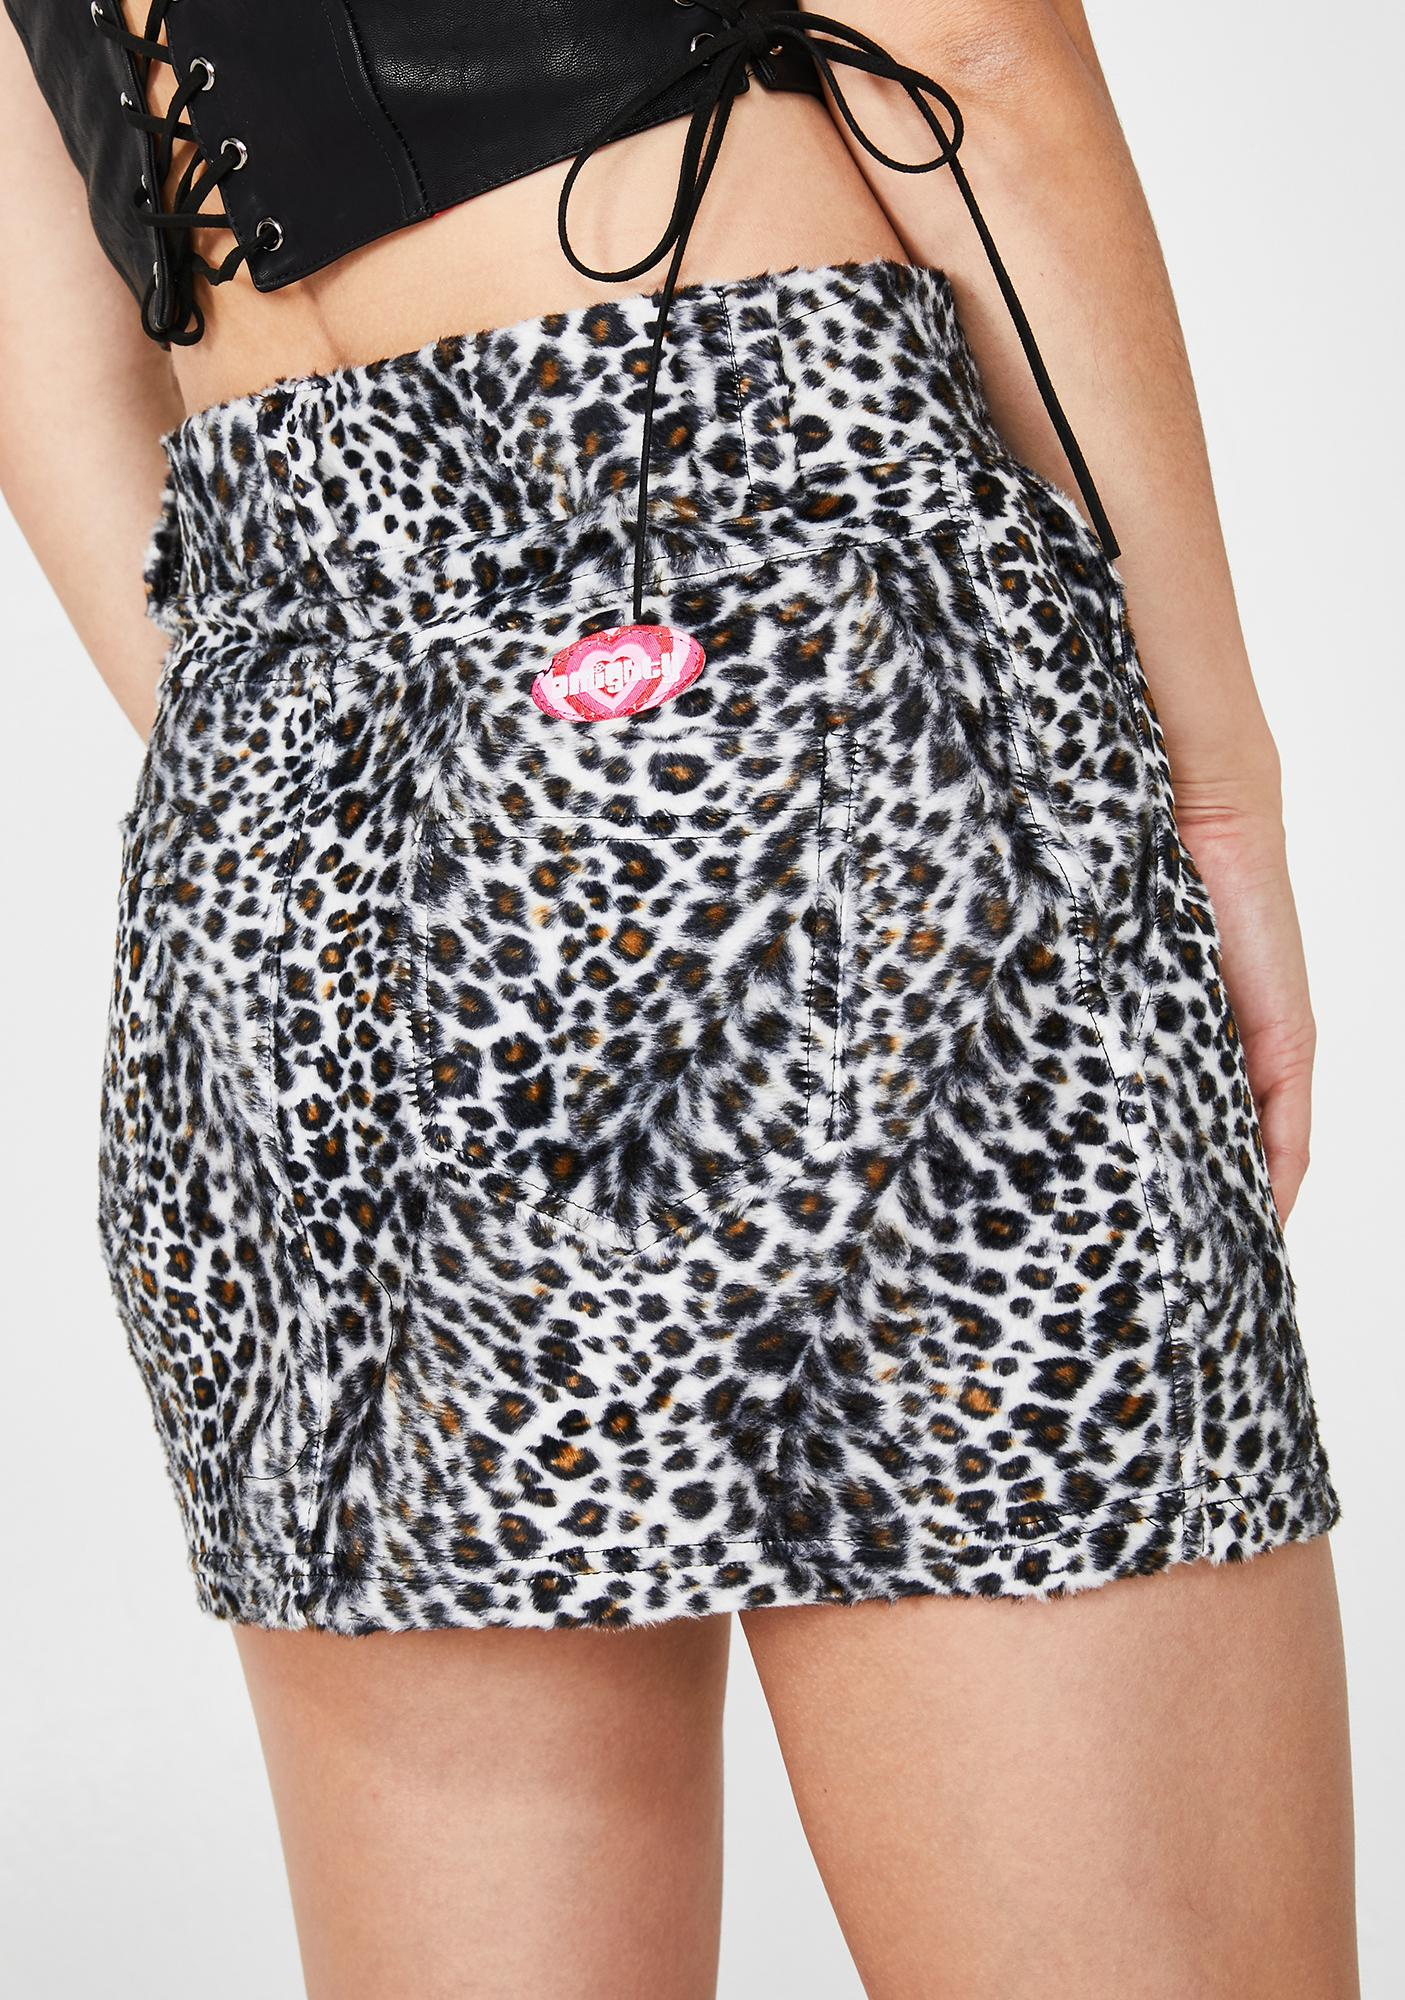 O Mighty Snow Leopard Chain Skirt